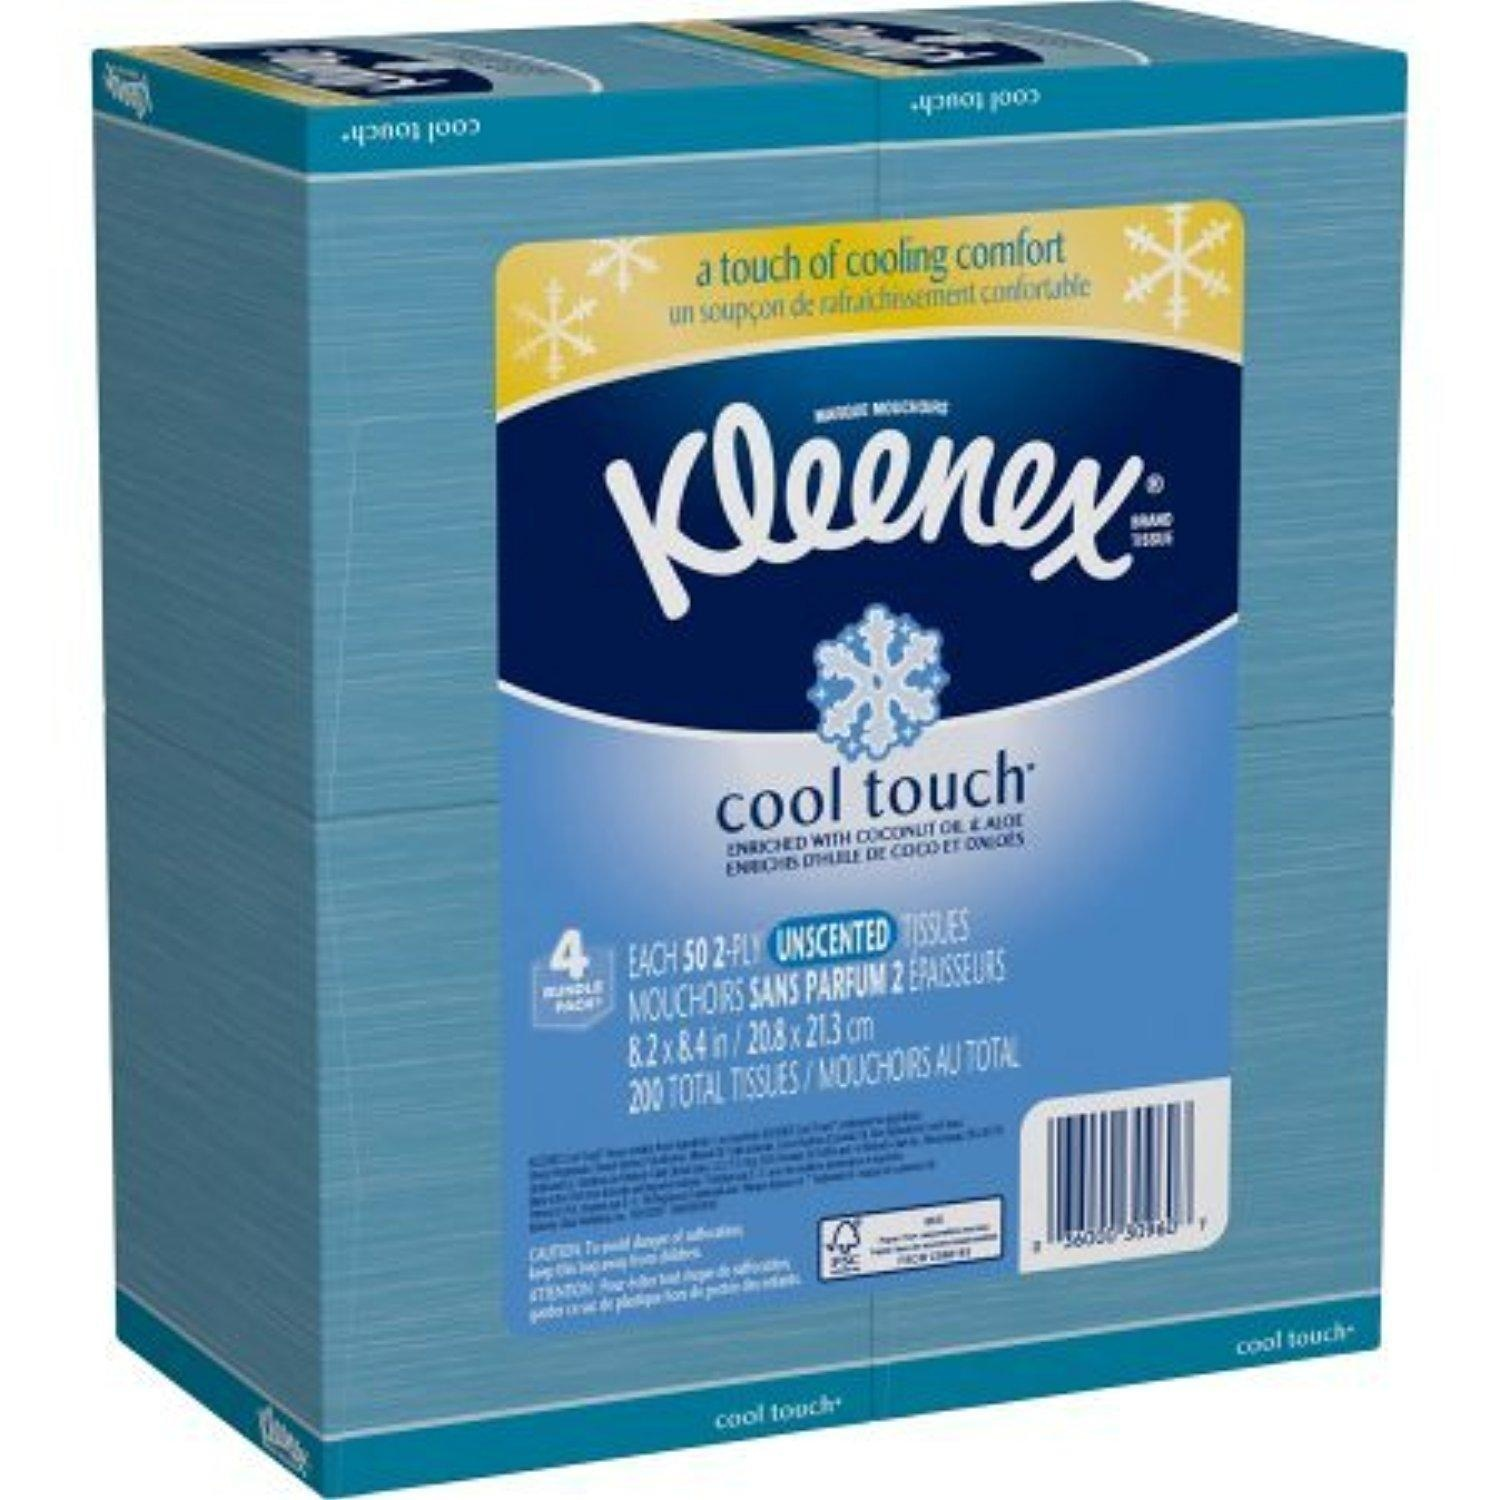 Kleenex Cool Touch Facial Tissues, 50 Tissues per Cube Box, Pack of 4